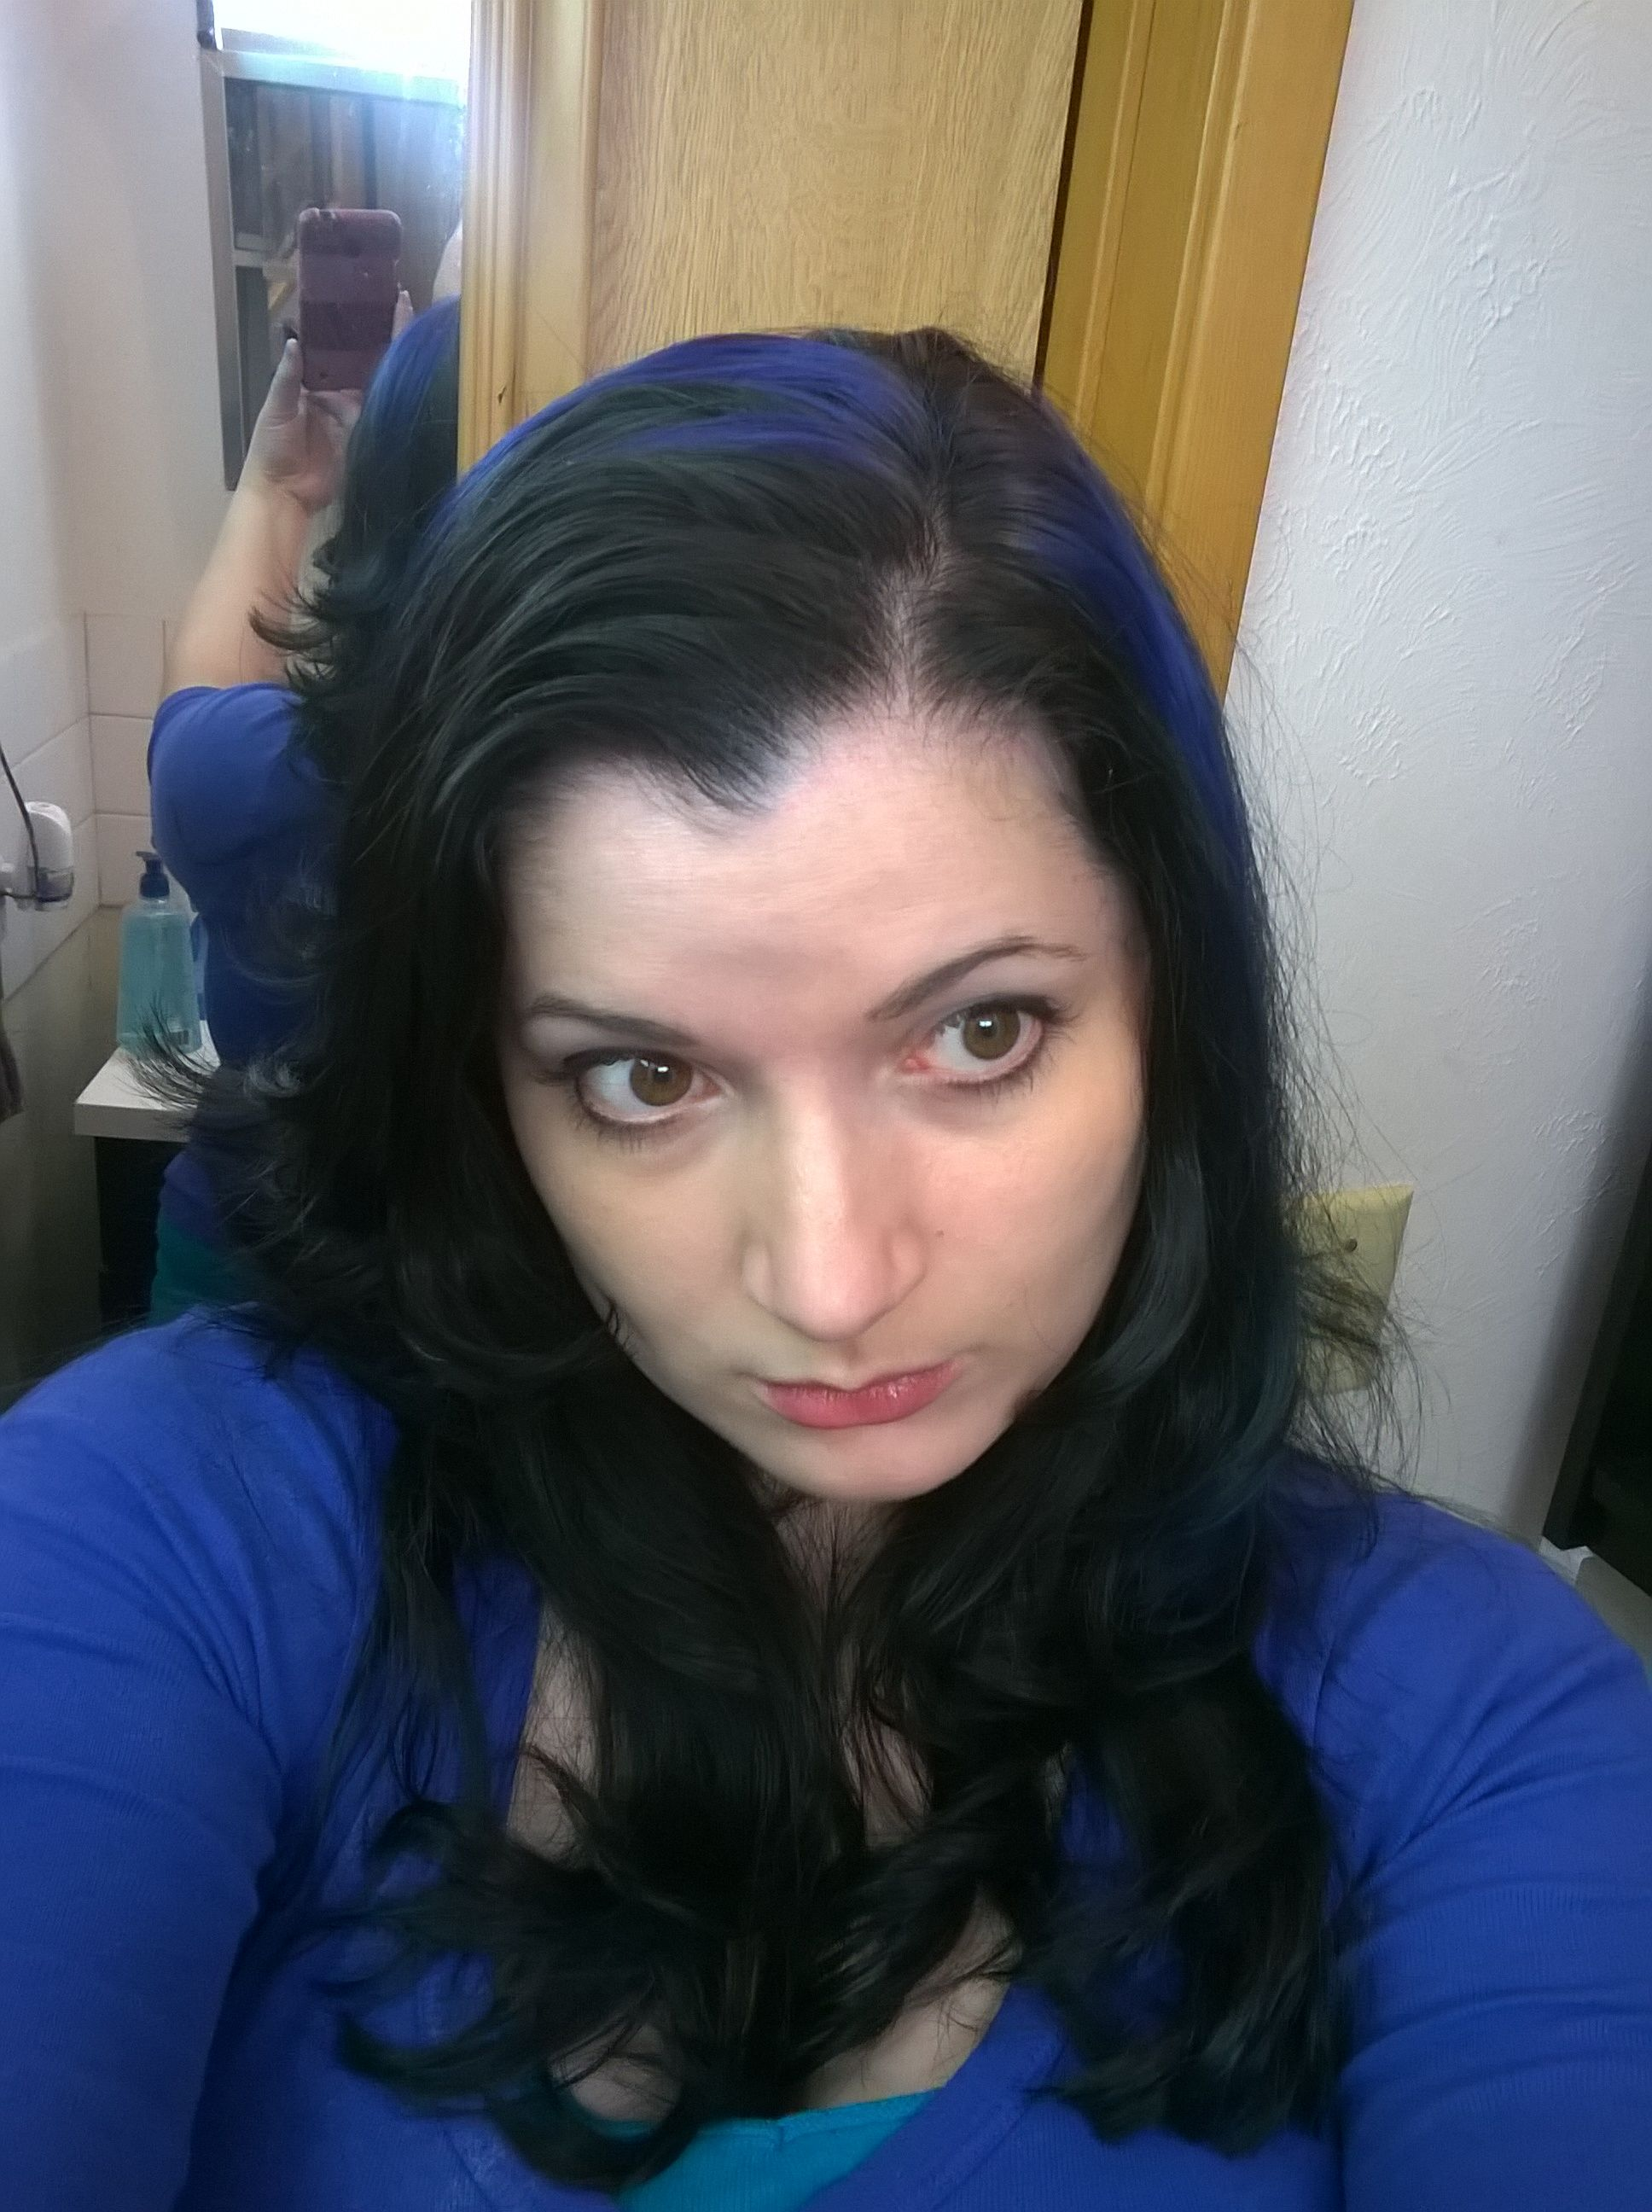 Black Hair With Blue Streaks Hair Makeup Black Hair Blue Black